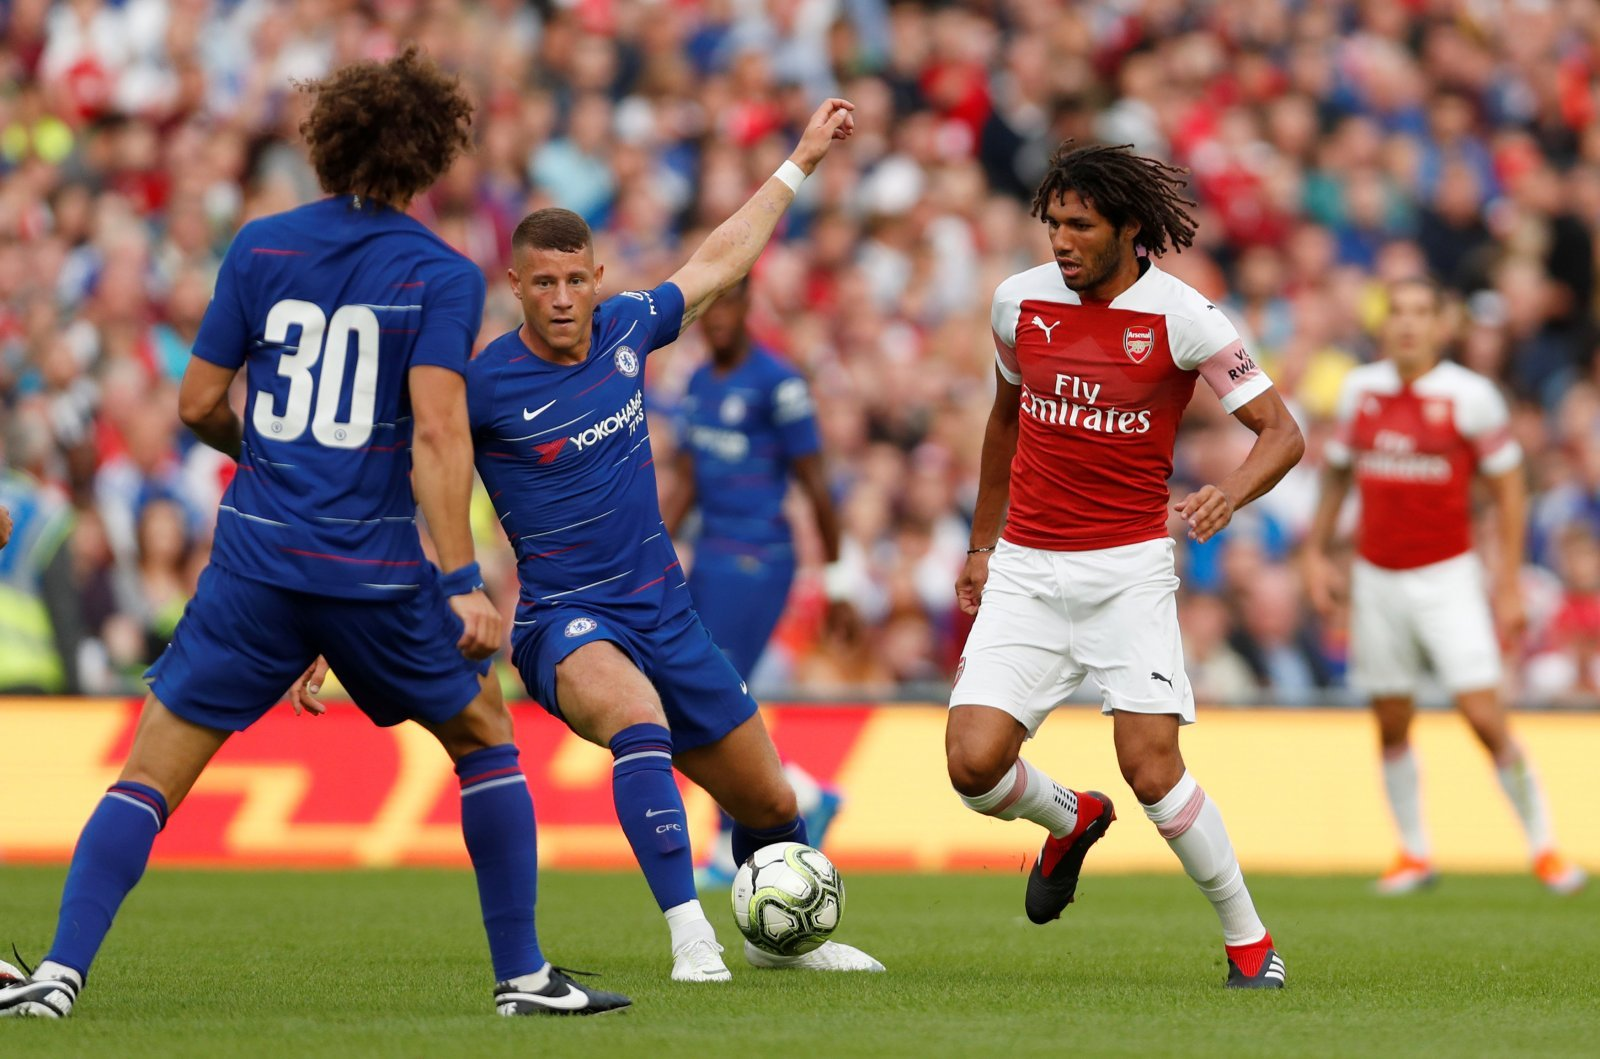 Arsenal cannot afford to let Elneny go after Xhaka's performance